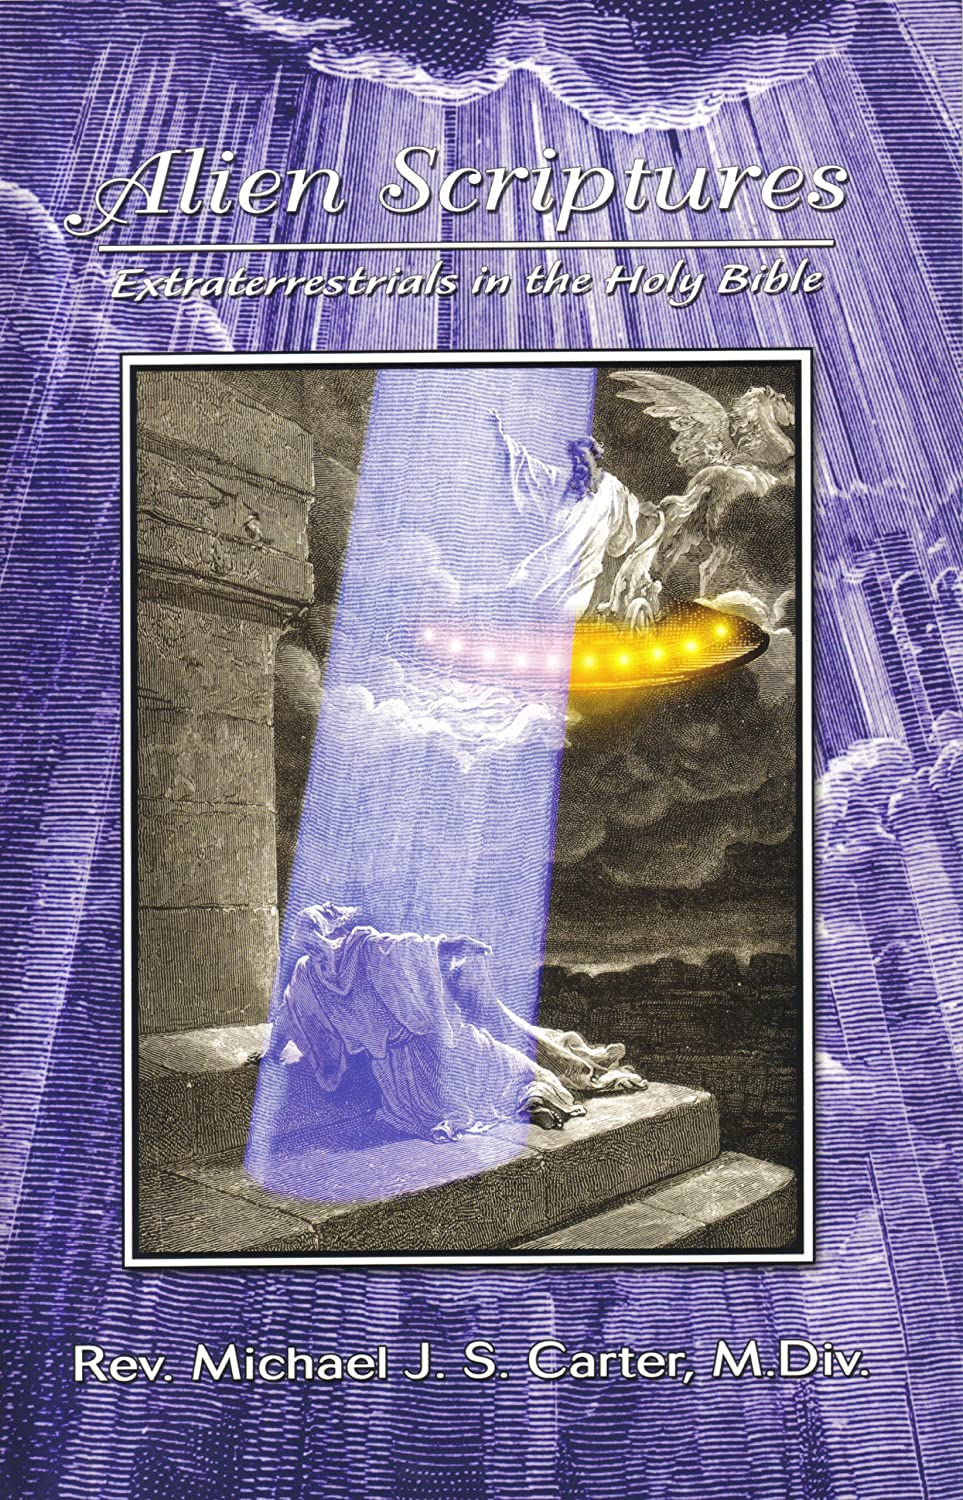 Alien Scriptures: Extraterrestrials in the Holy Bible by Michael Carter